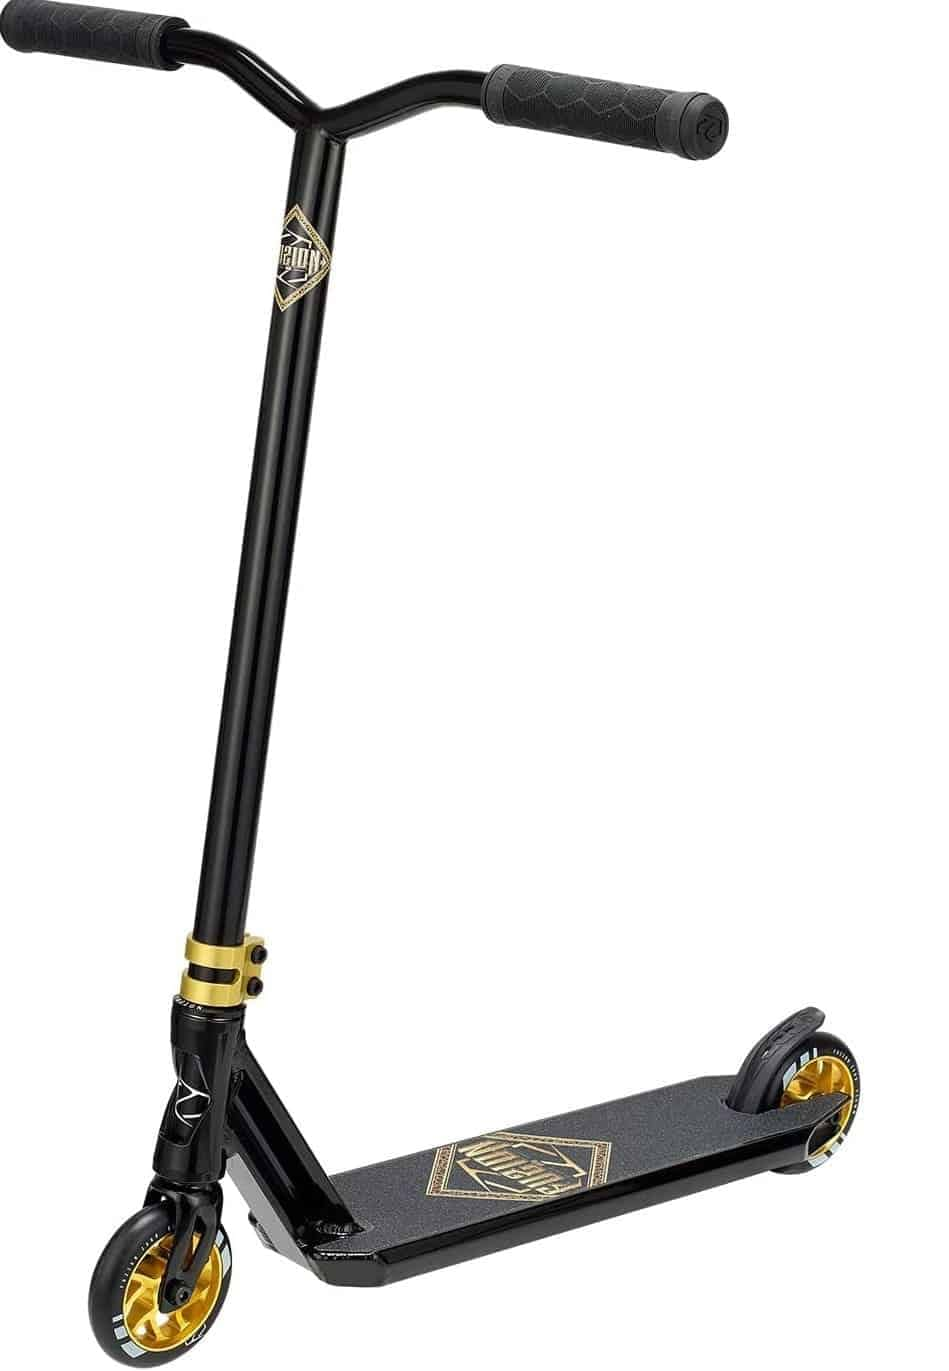 What are the Best Stunt Scooters Reviews For Beginners, Kids, And Adults In 2021? 1